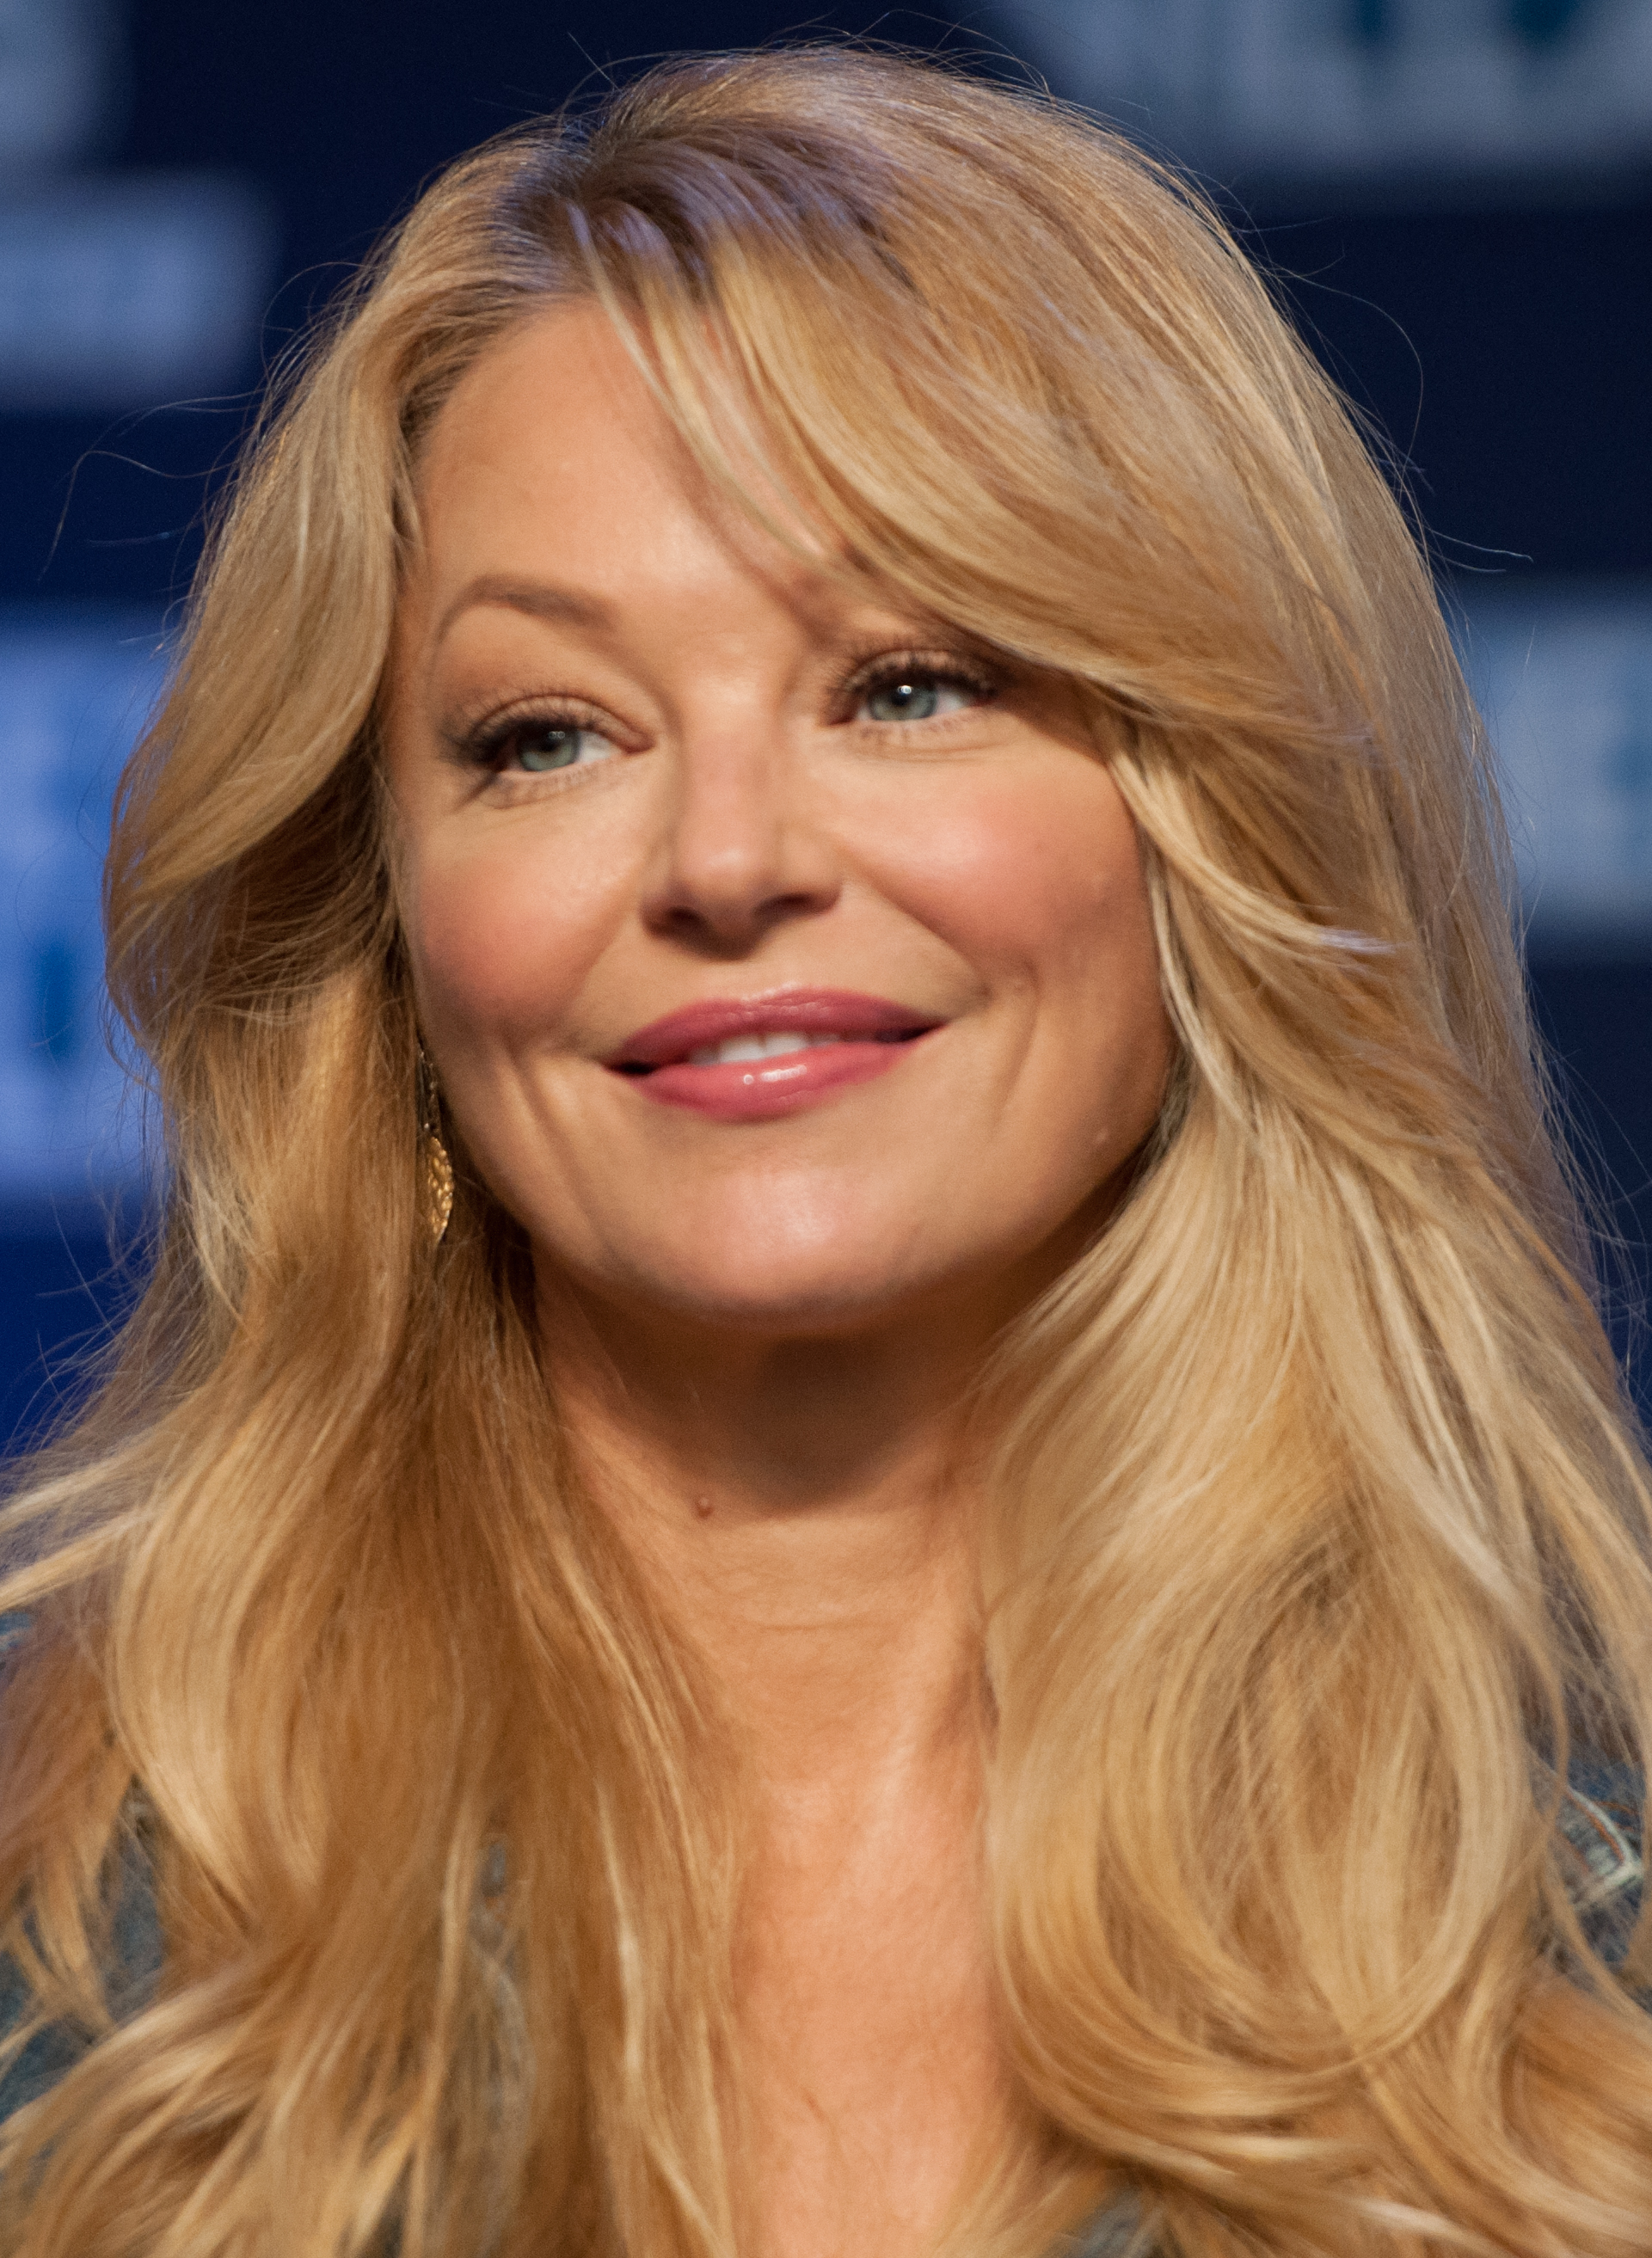 Charlotte Ross nude photos 2019